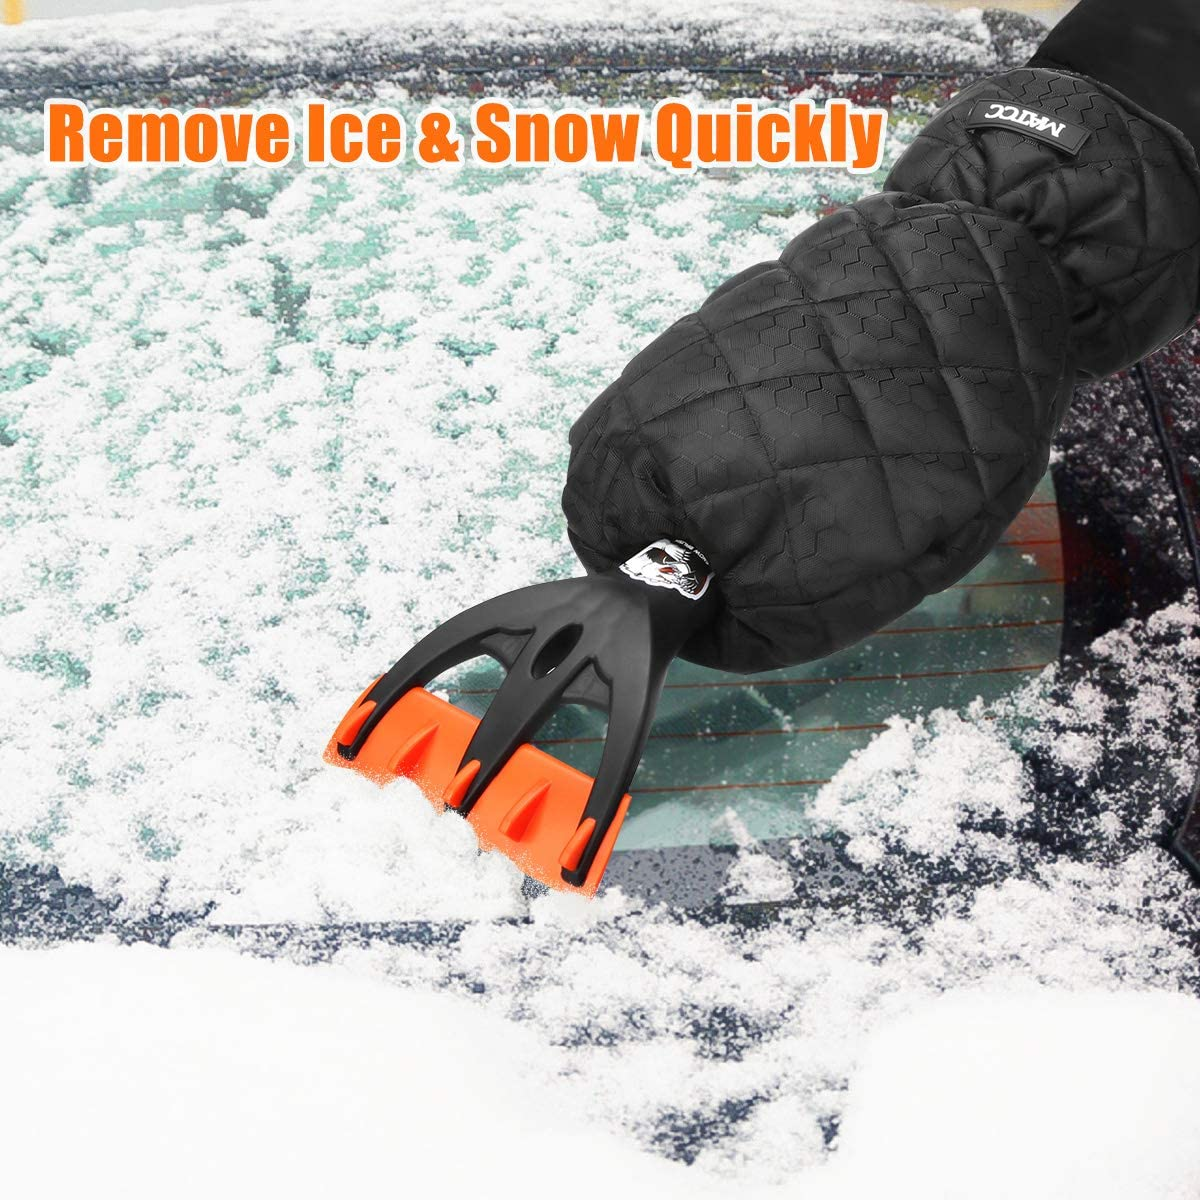 MATCC Ice Scraper Mitt for Windshield Car Ice Scraper Glove Waterproof and Warm Small Car Window Snow Scraper Tool for Freezer Model MIC004